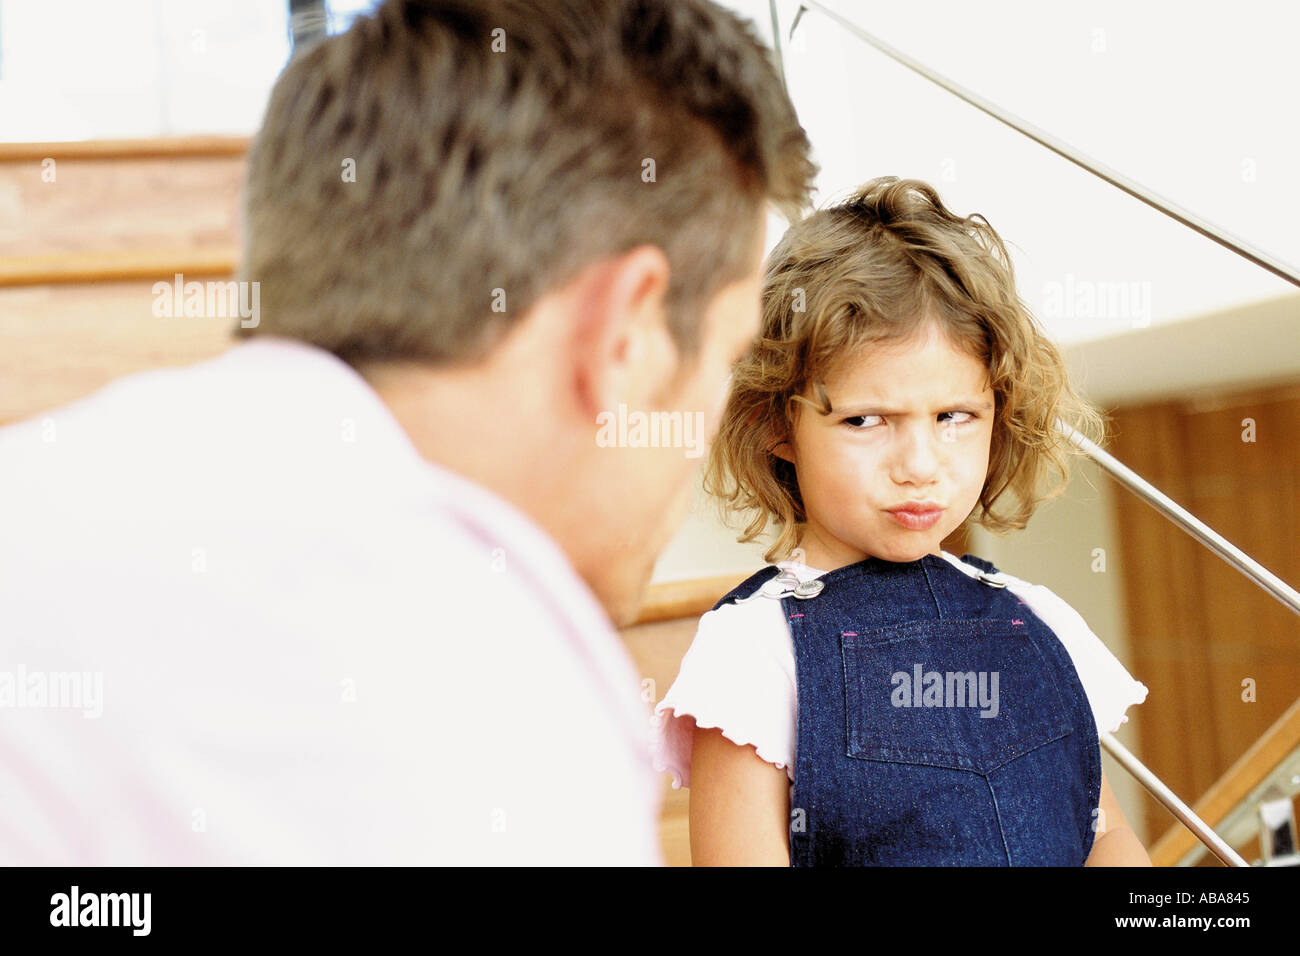 Father telling off naughty daughter - Stock Image